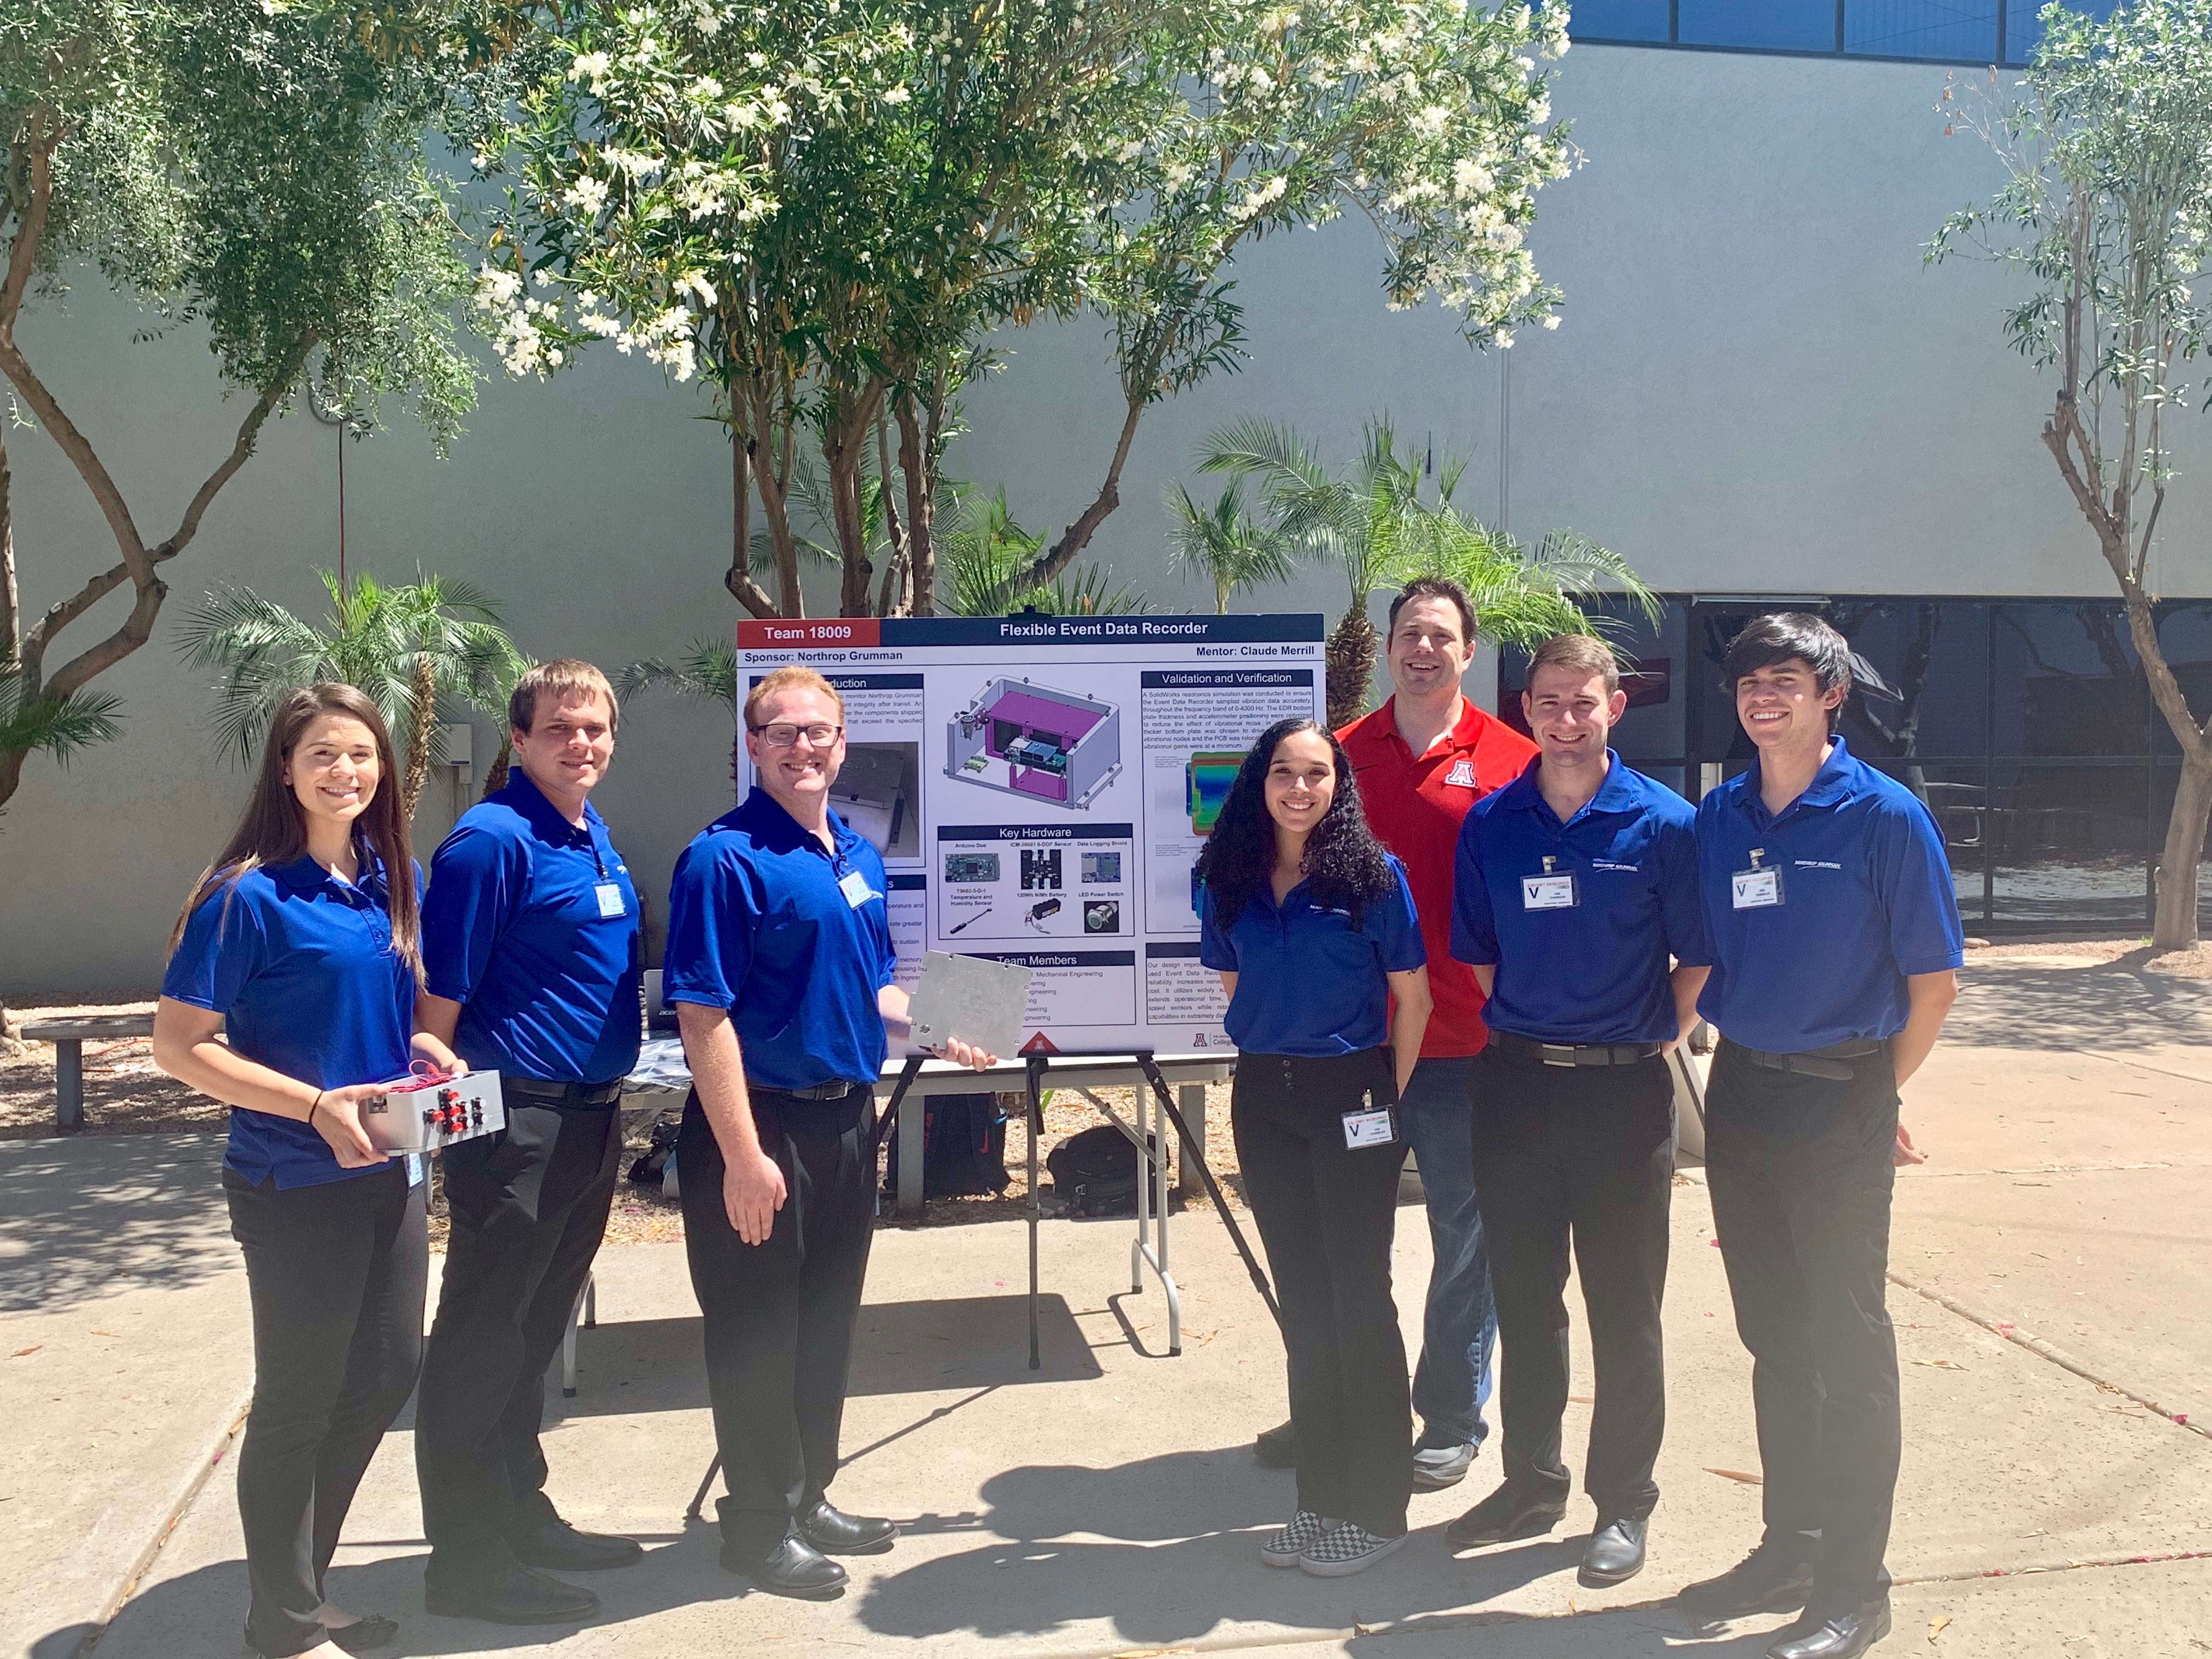 A group of seven people, six in blue polos and one in a red polo) stand next to an academic poster. They are outside and a tree is in the background.